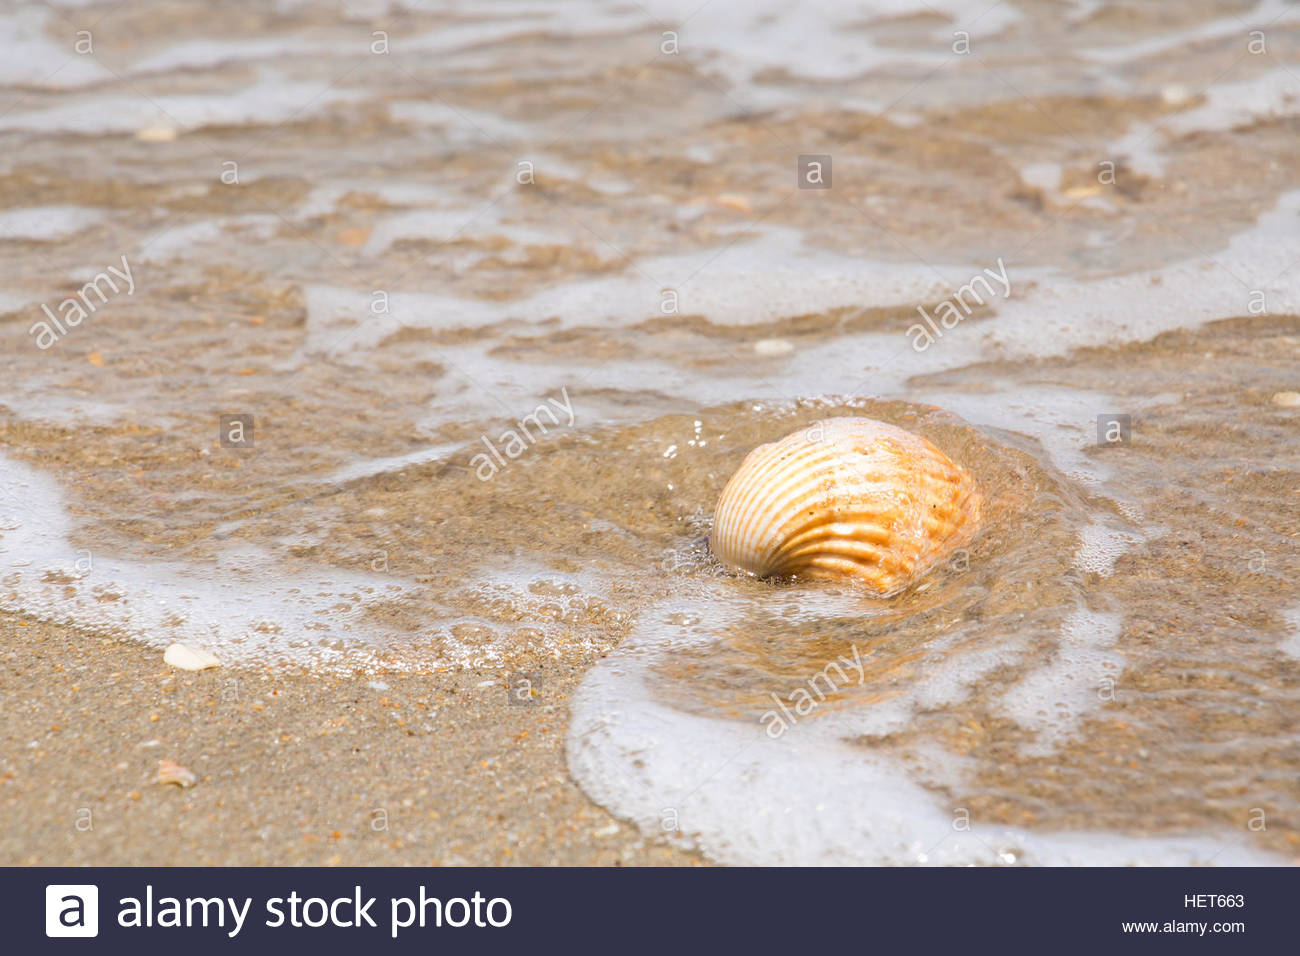 Shell at sandy beach closeup, nature beach natural beauty abstract nature close up beach sand closeup ocean natural - Stock Image